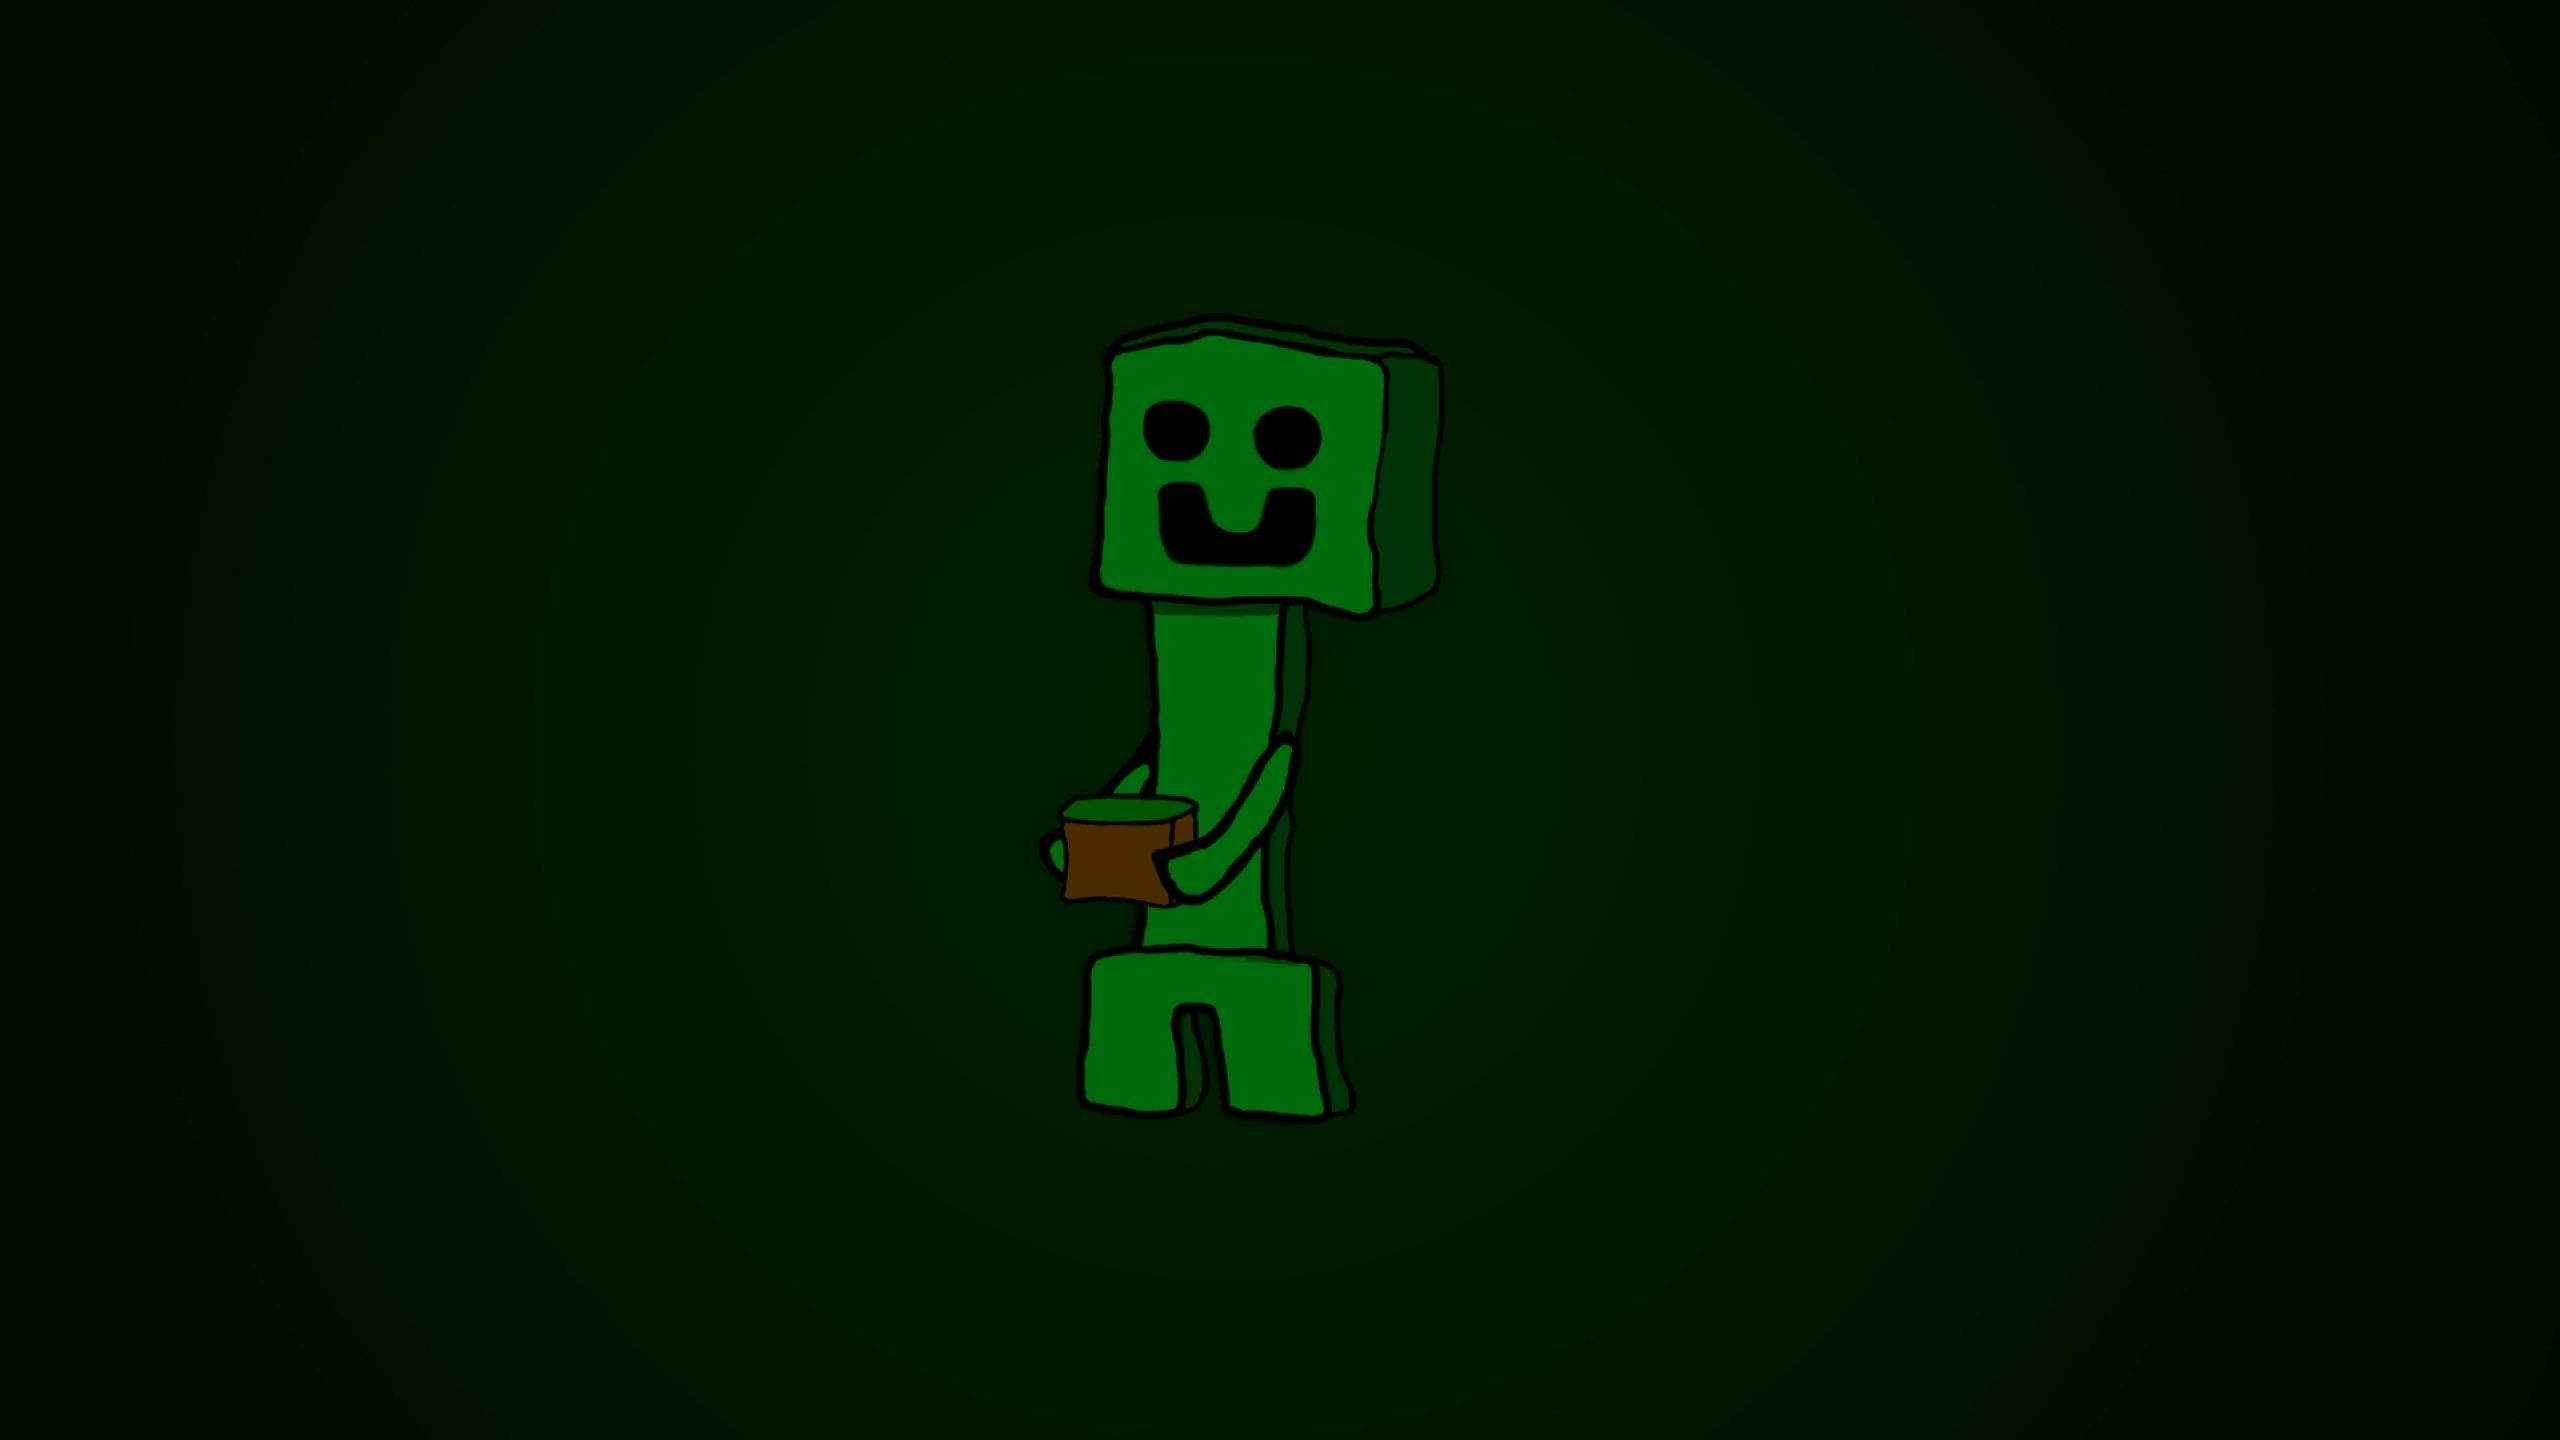 Minecraft Creeper Wallpapers Top Free Minecraft Creeper Backgrounds Wallpaperaccess